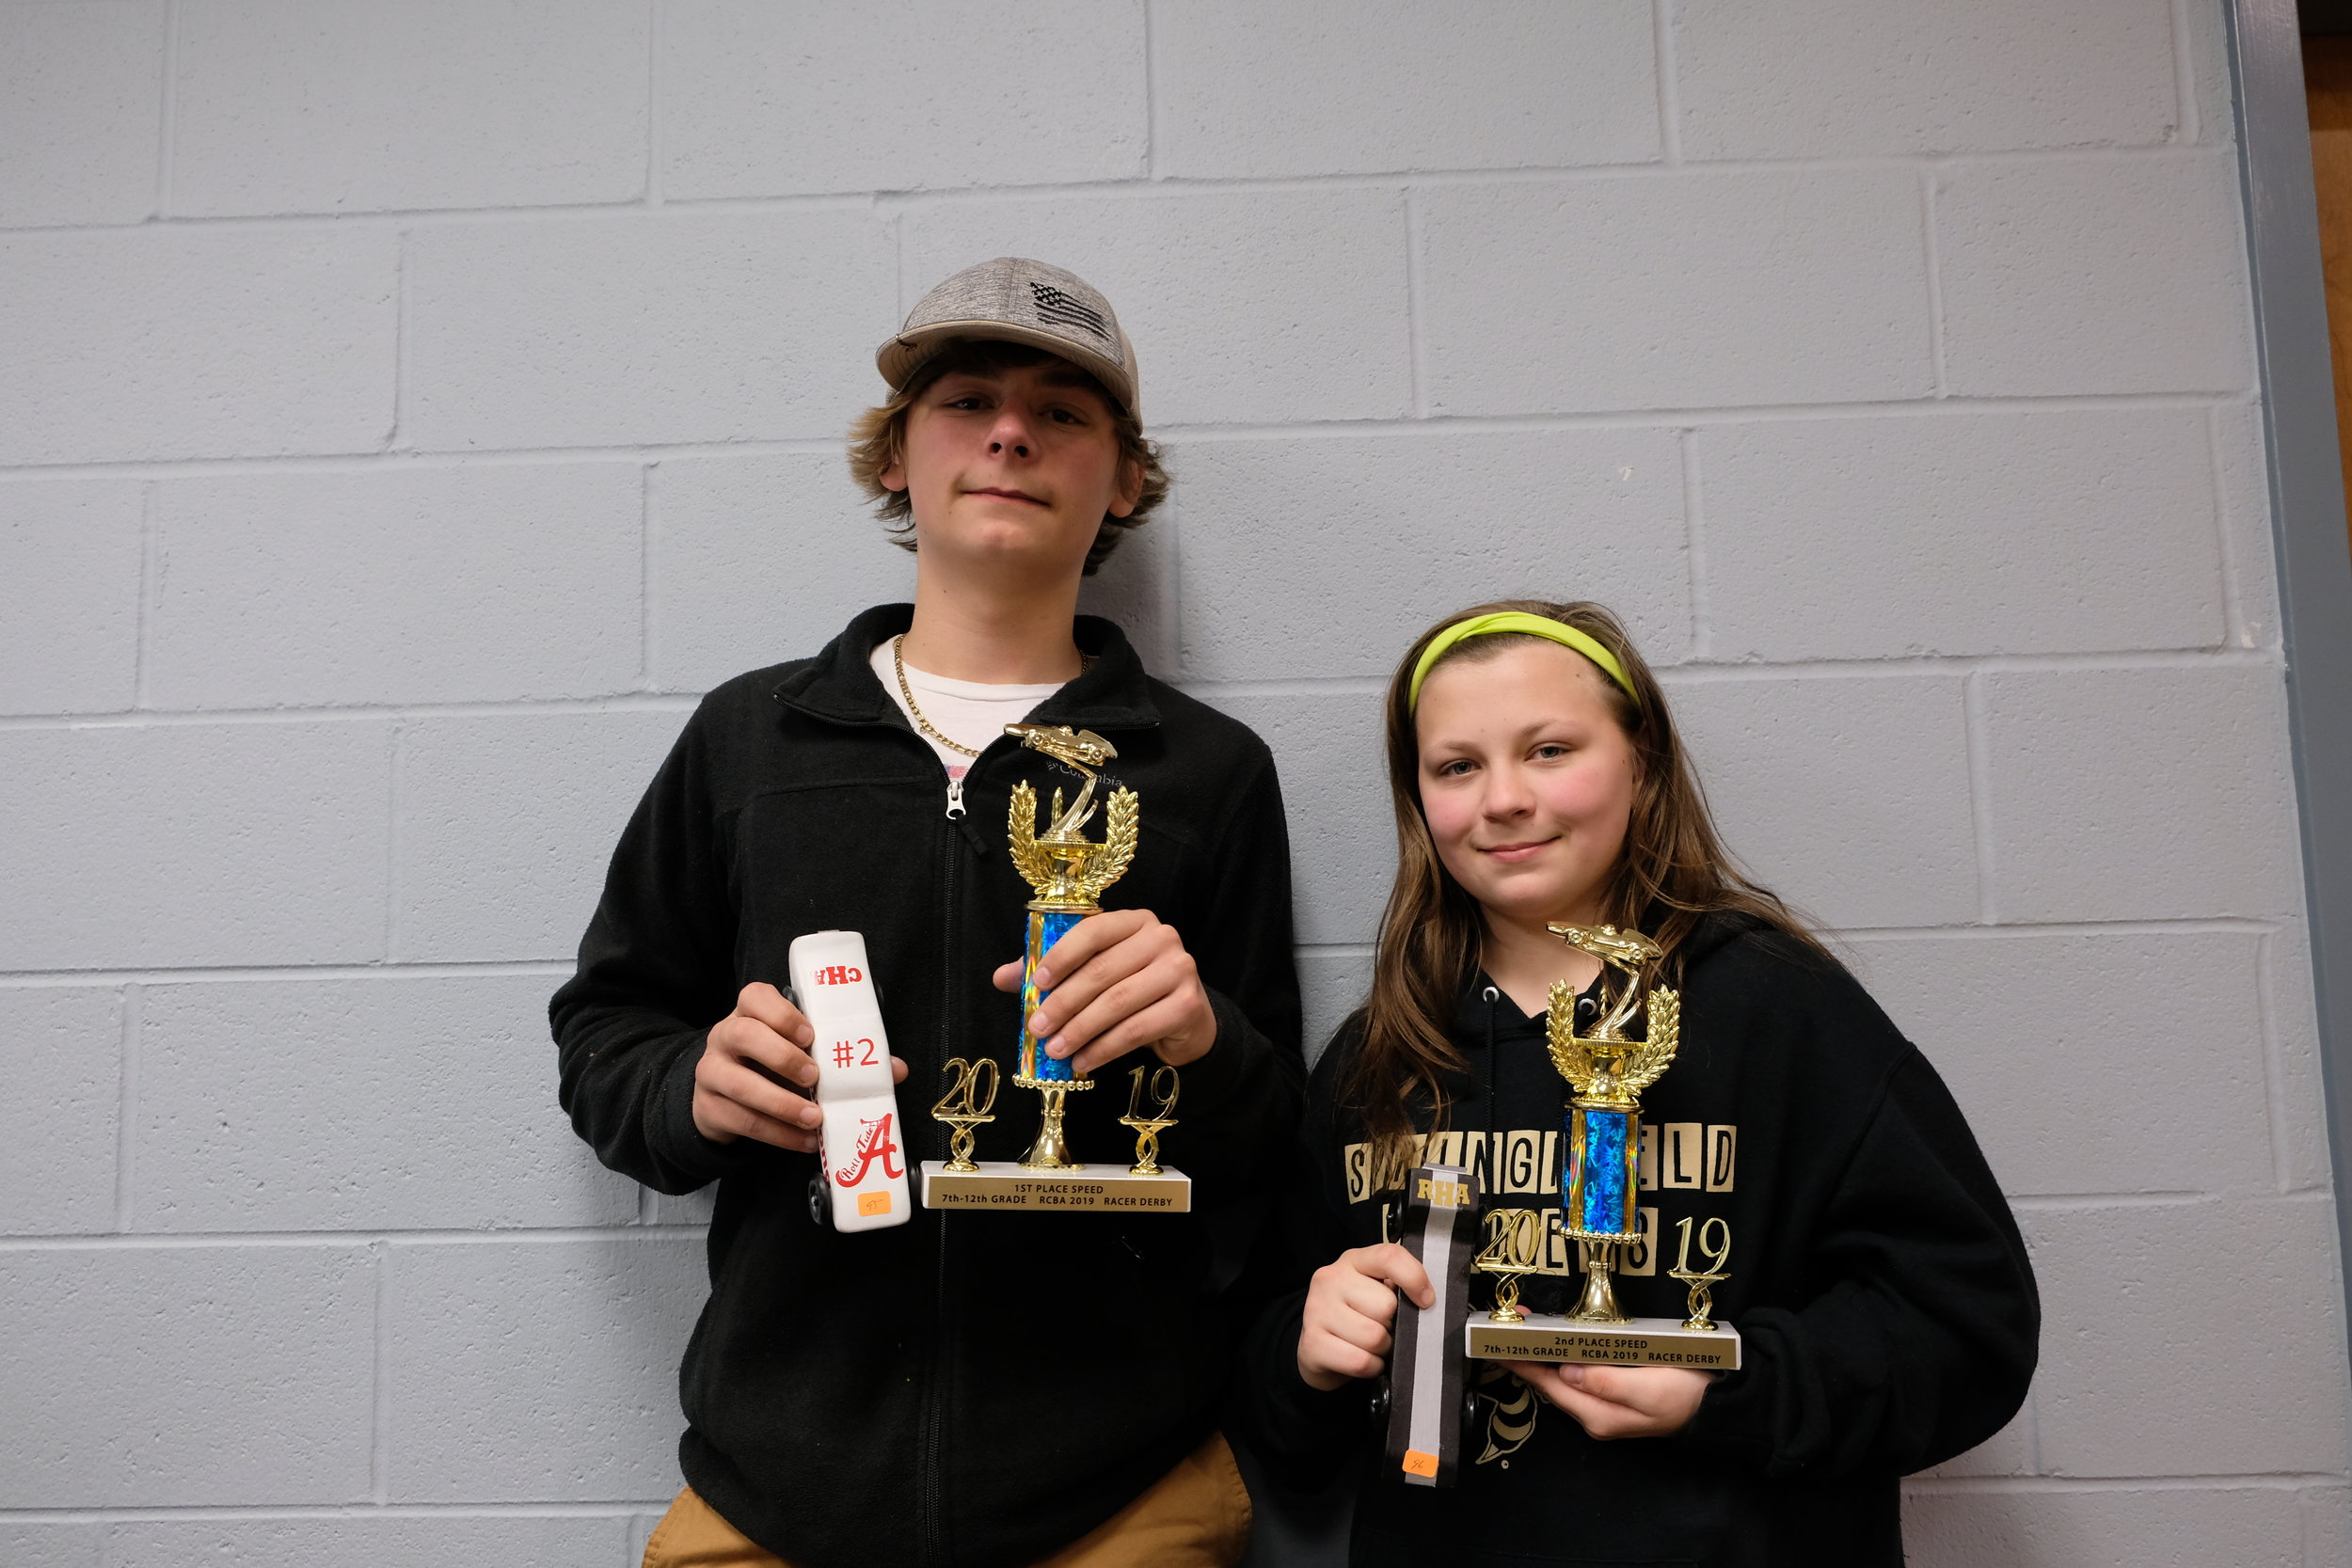 Derby Winners 7th - 12th Grades J.D. Hulset, Oakland and Rachel Hulset, Oakland